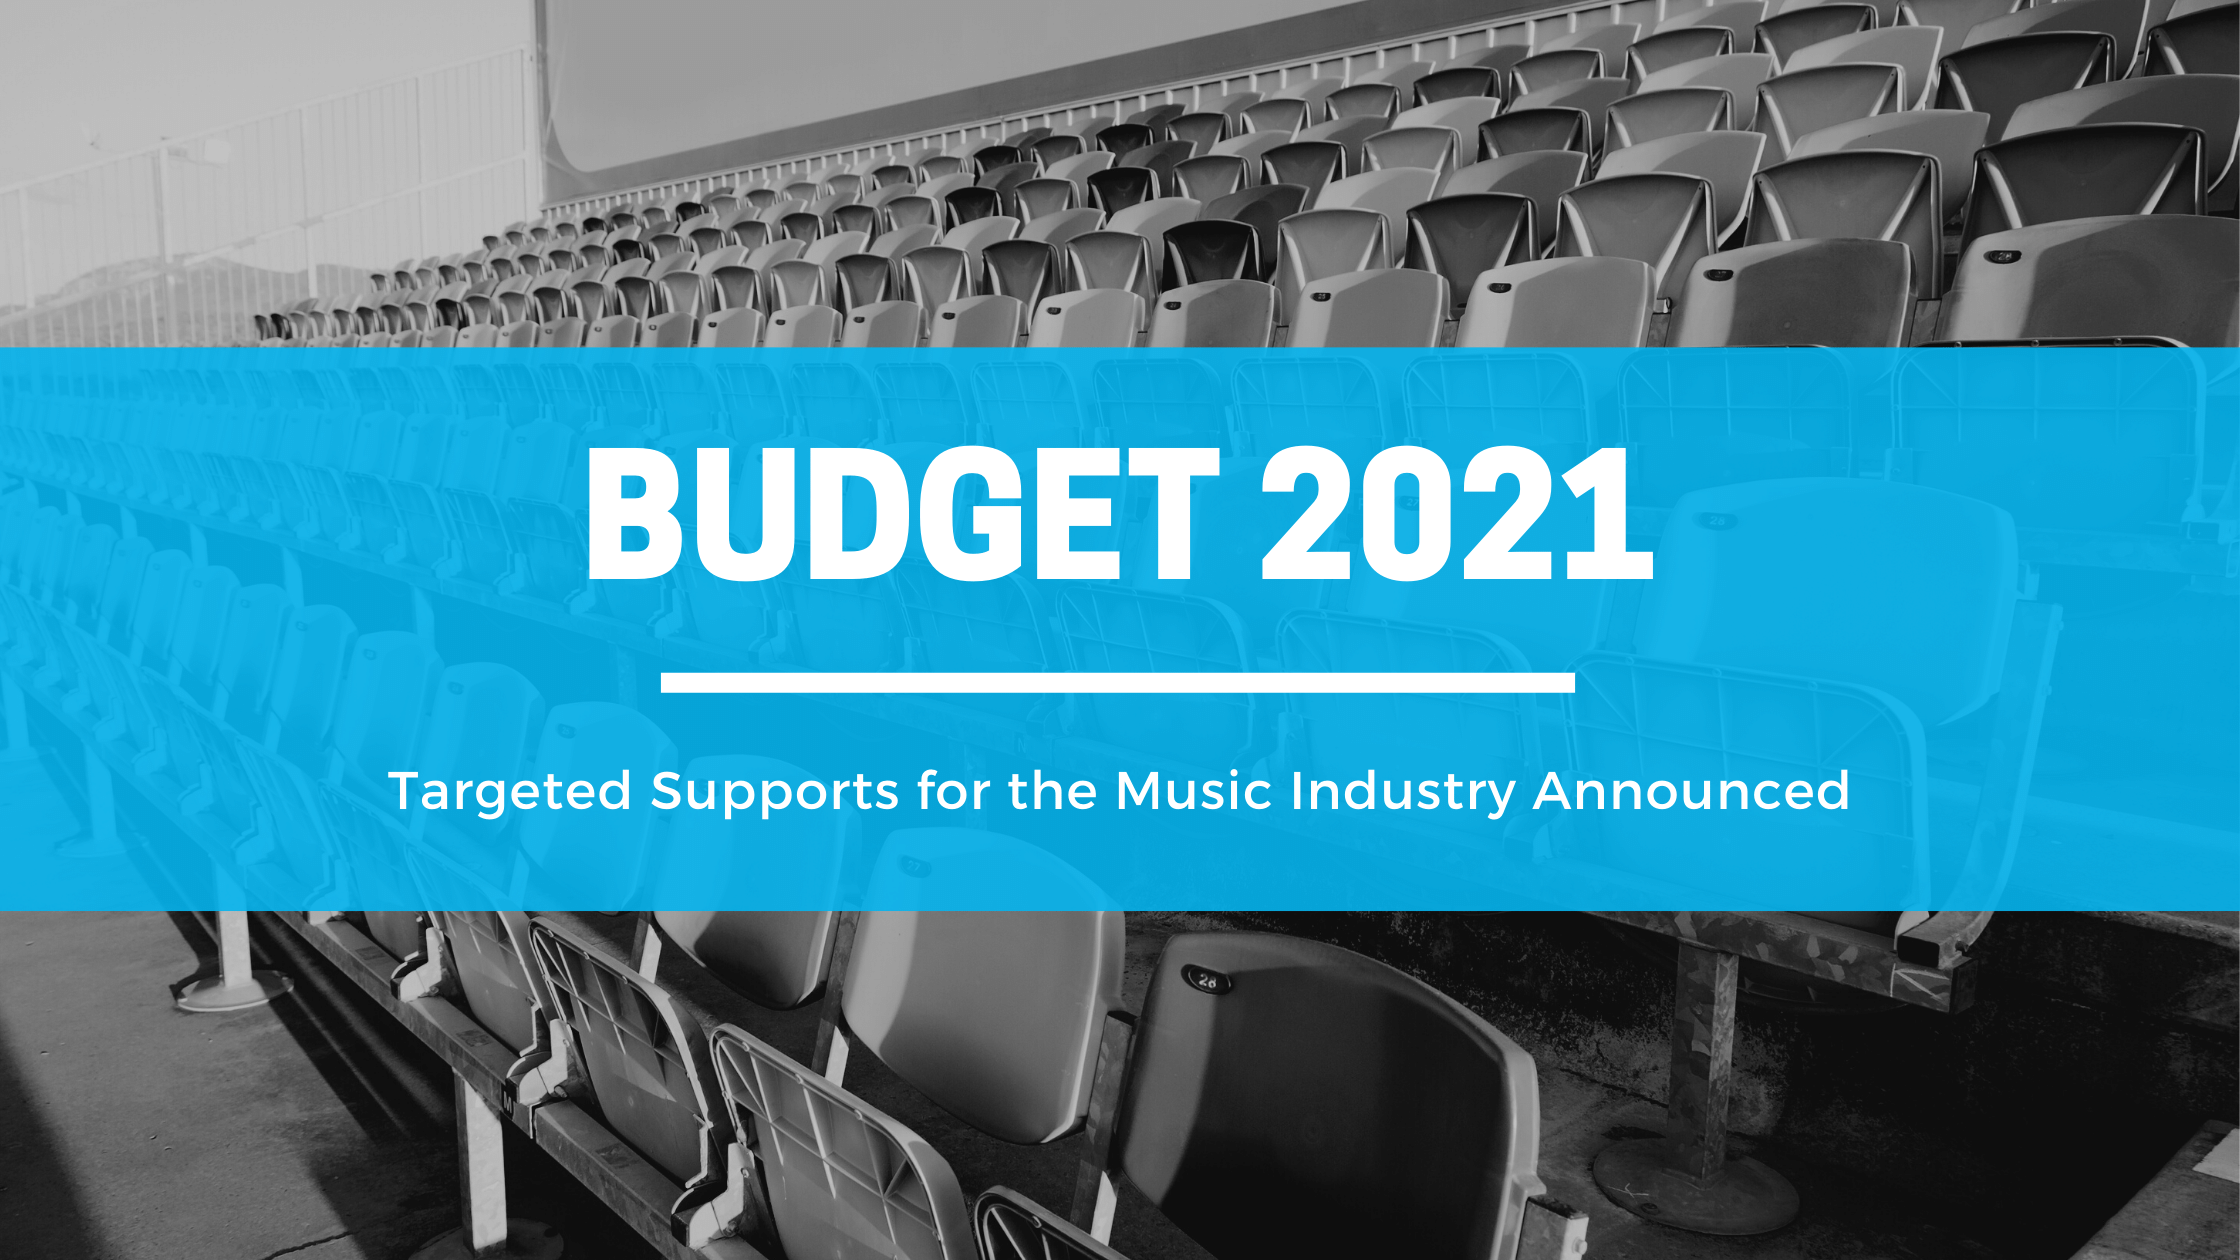 Targeted Supports for the Irish Music Industry Announced in Budget 2021